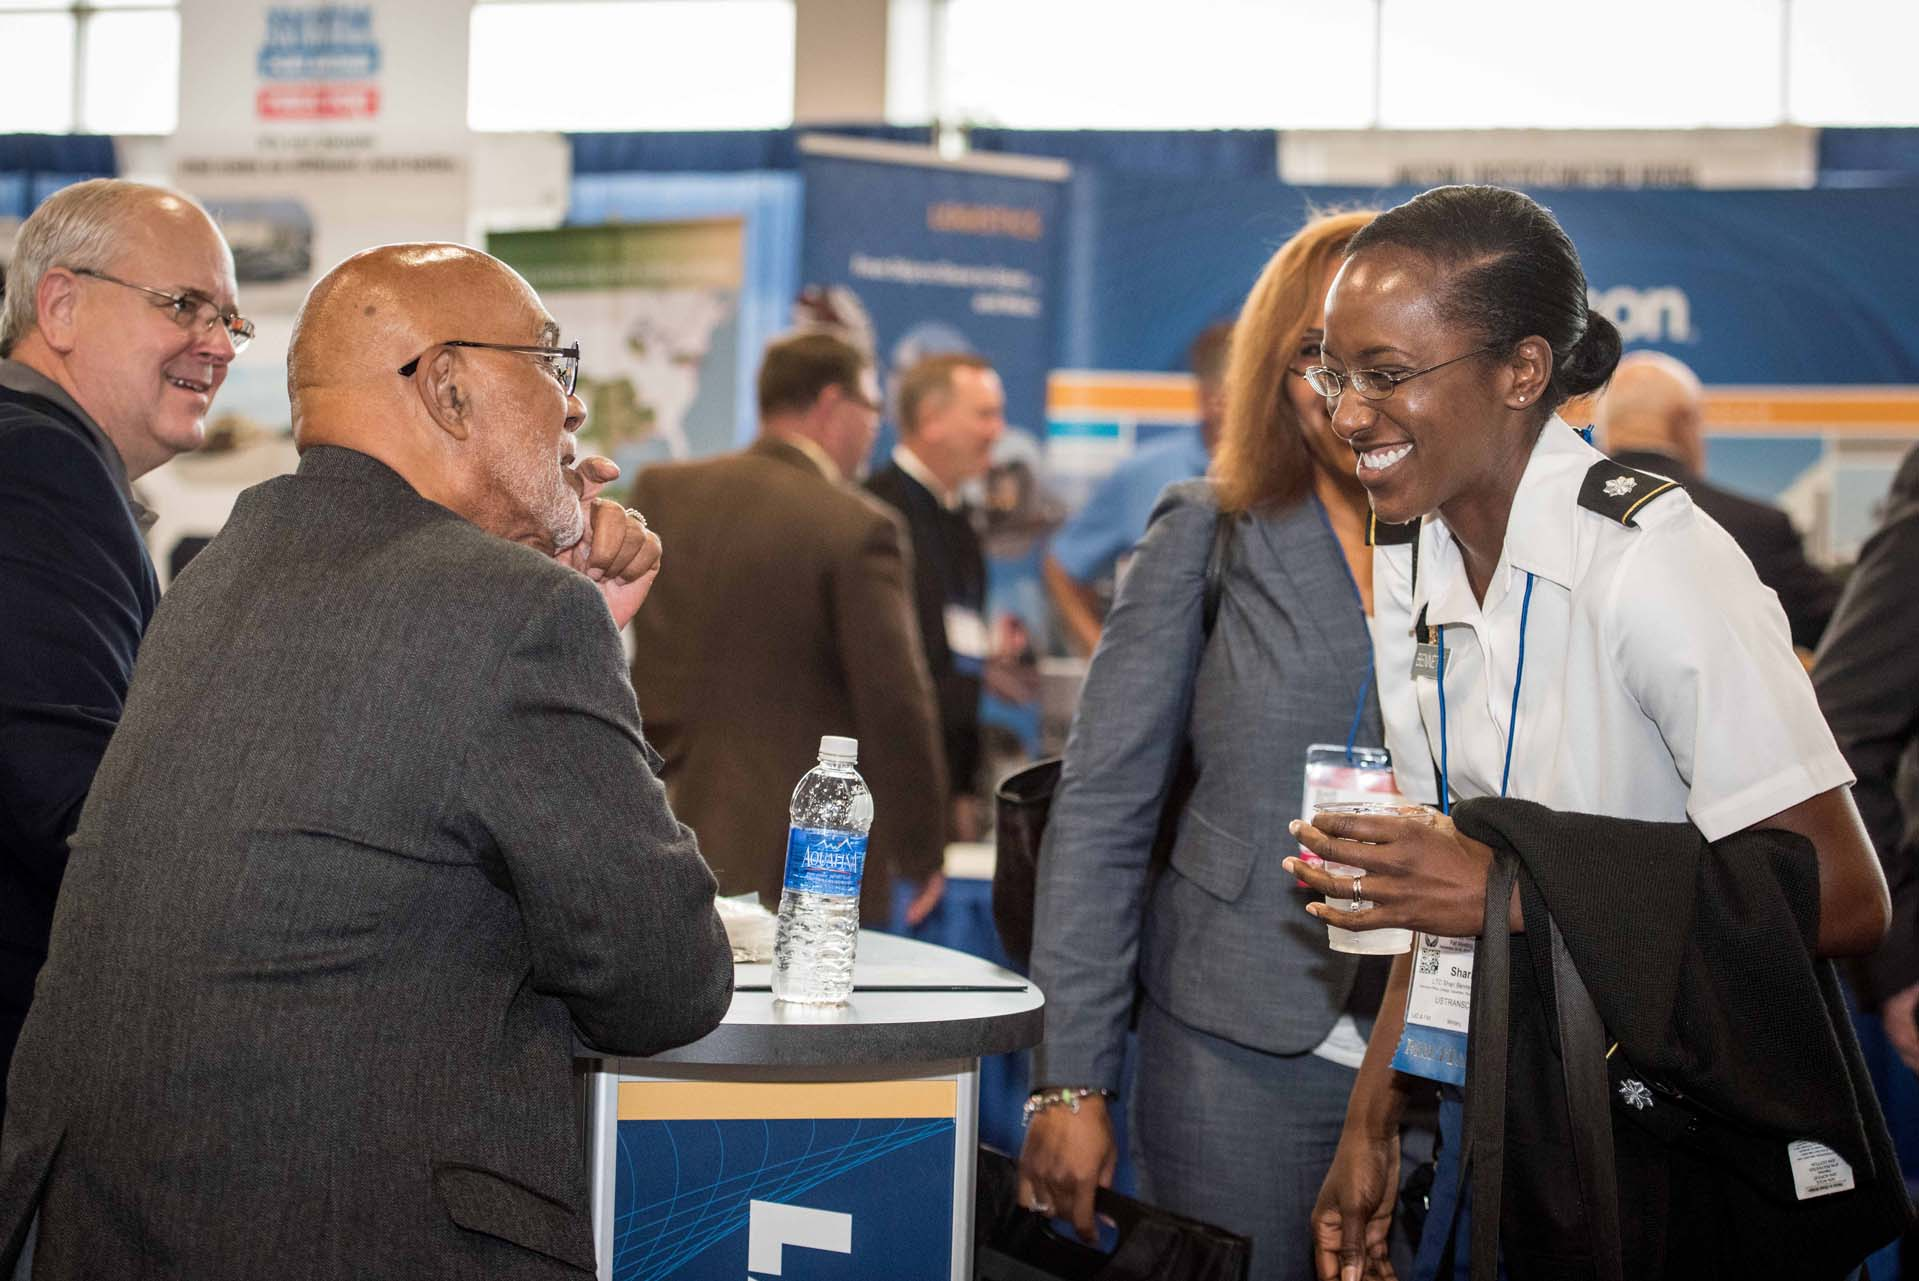 150929_NDTA-2015-Conference-Lunch-084